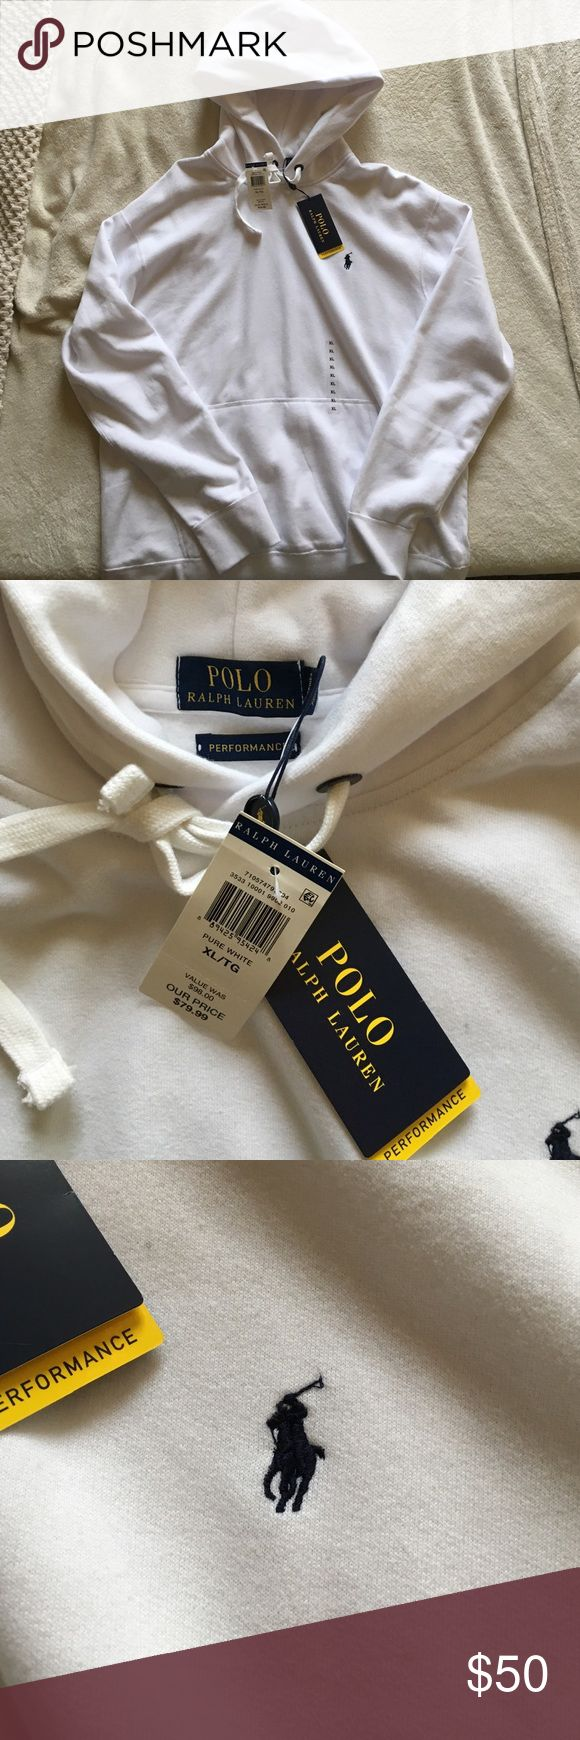 NWT Polo Ralph Lauren performance hoodie size xl Brand new white polo hoodie Ralph Lauren Other